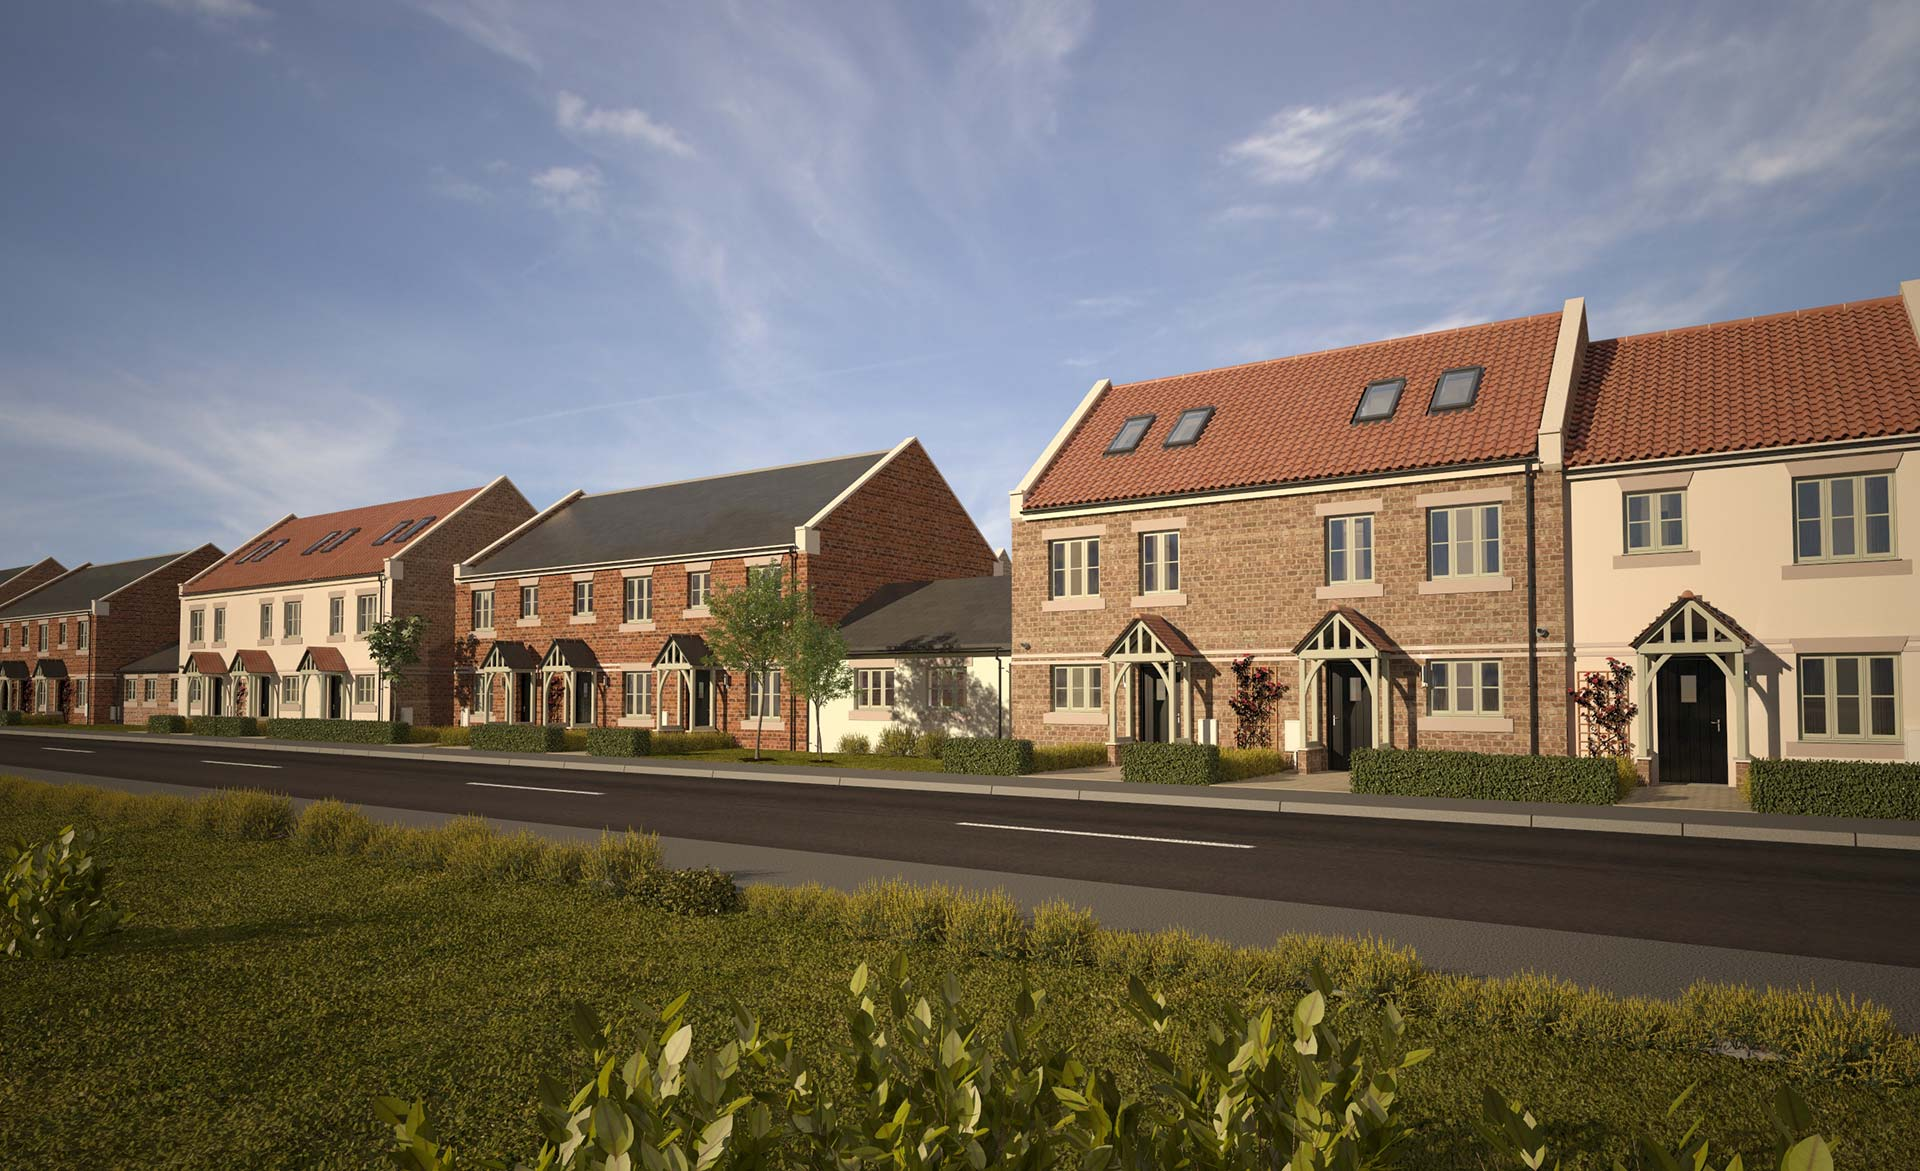 Chilton: a new and exclusive residential property investment opportunity